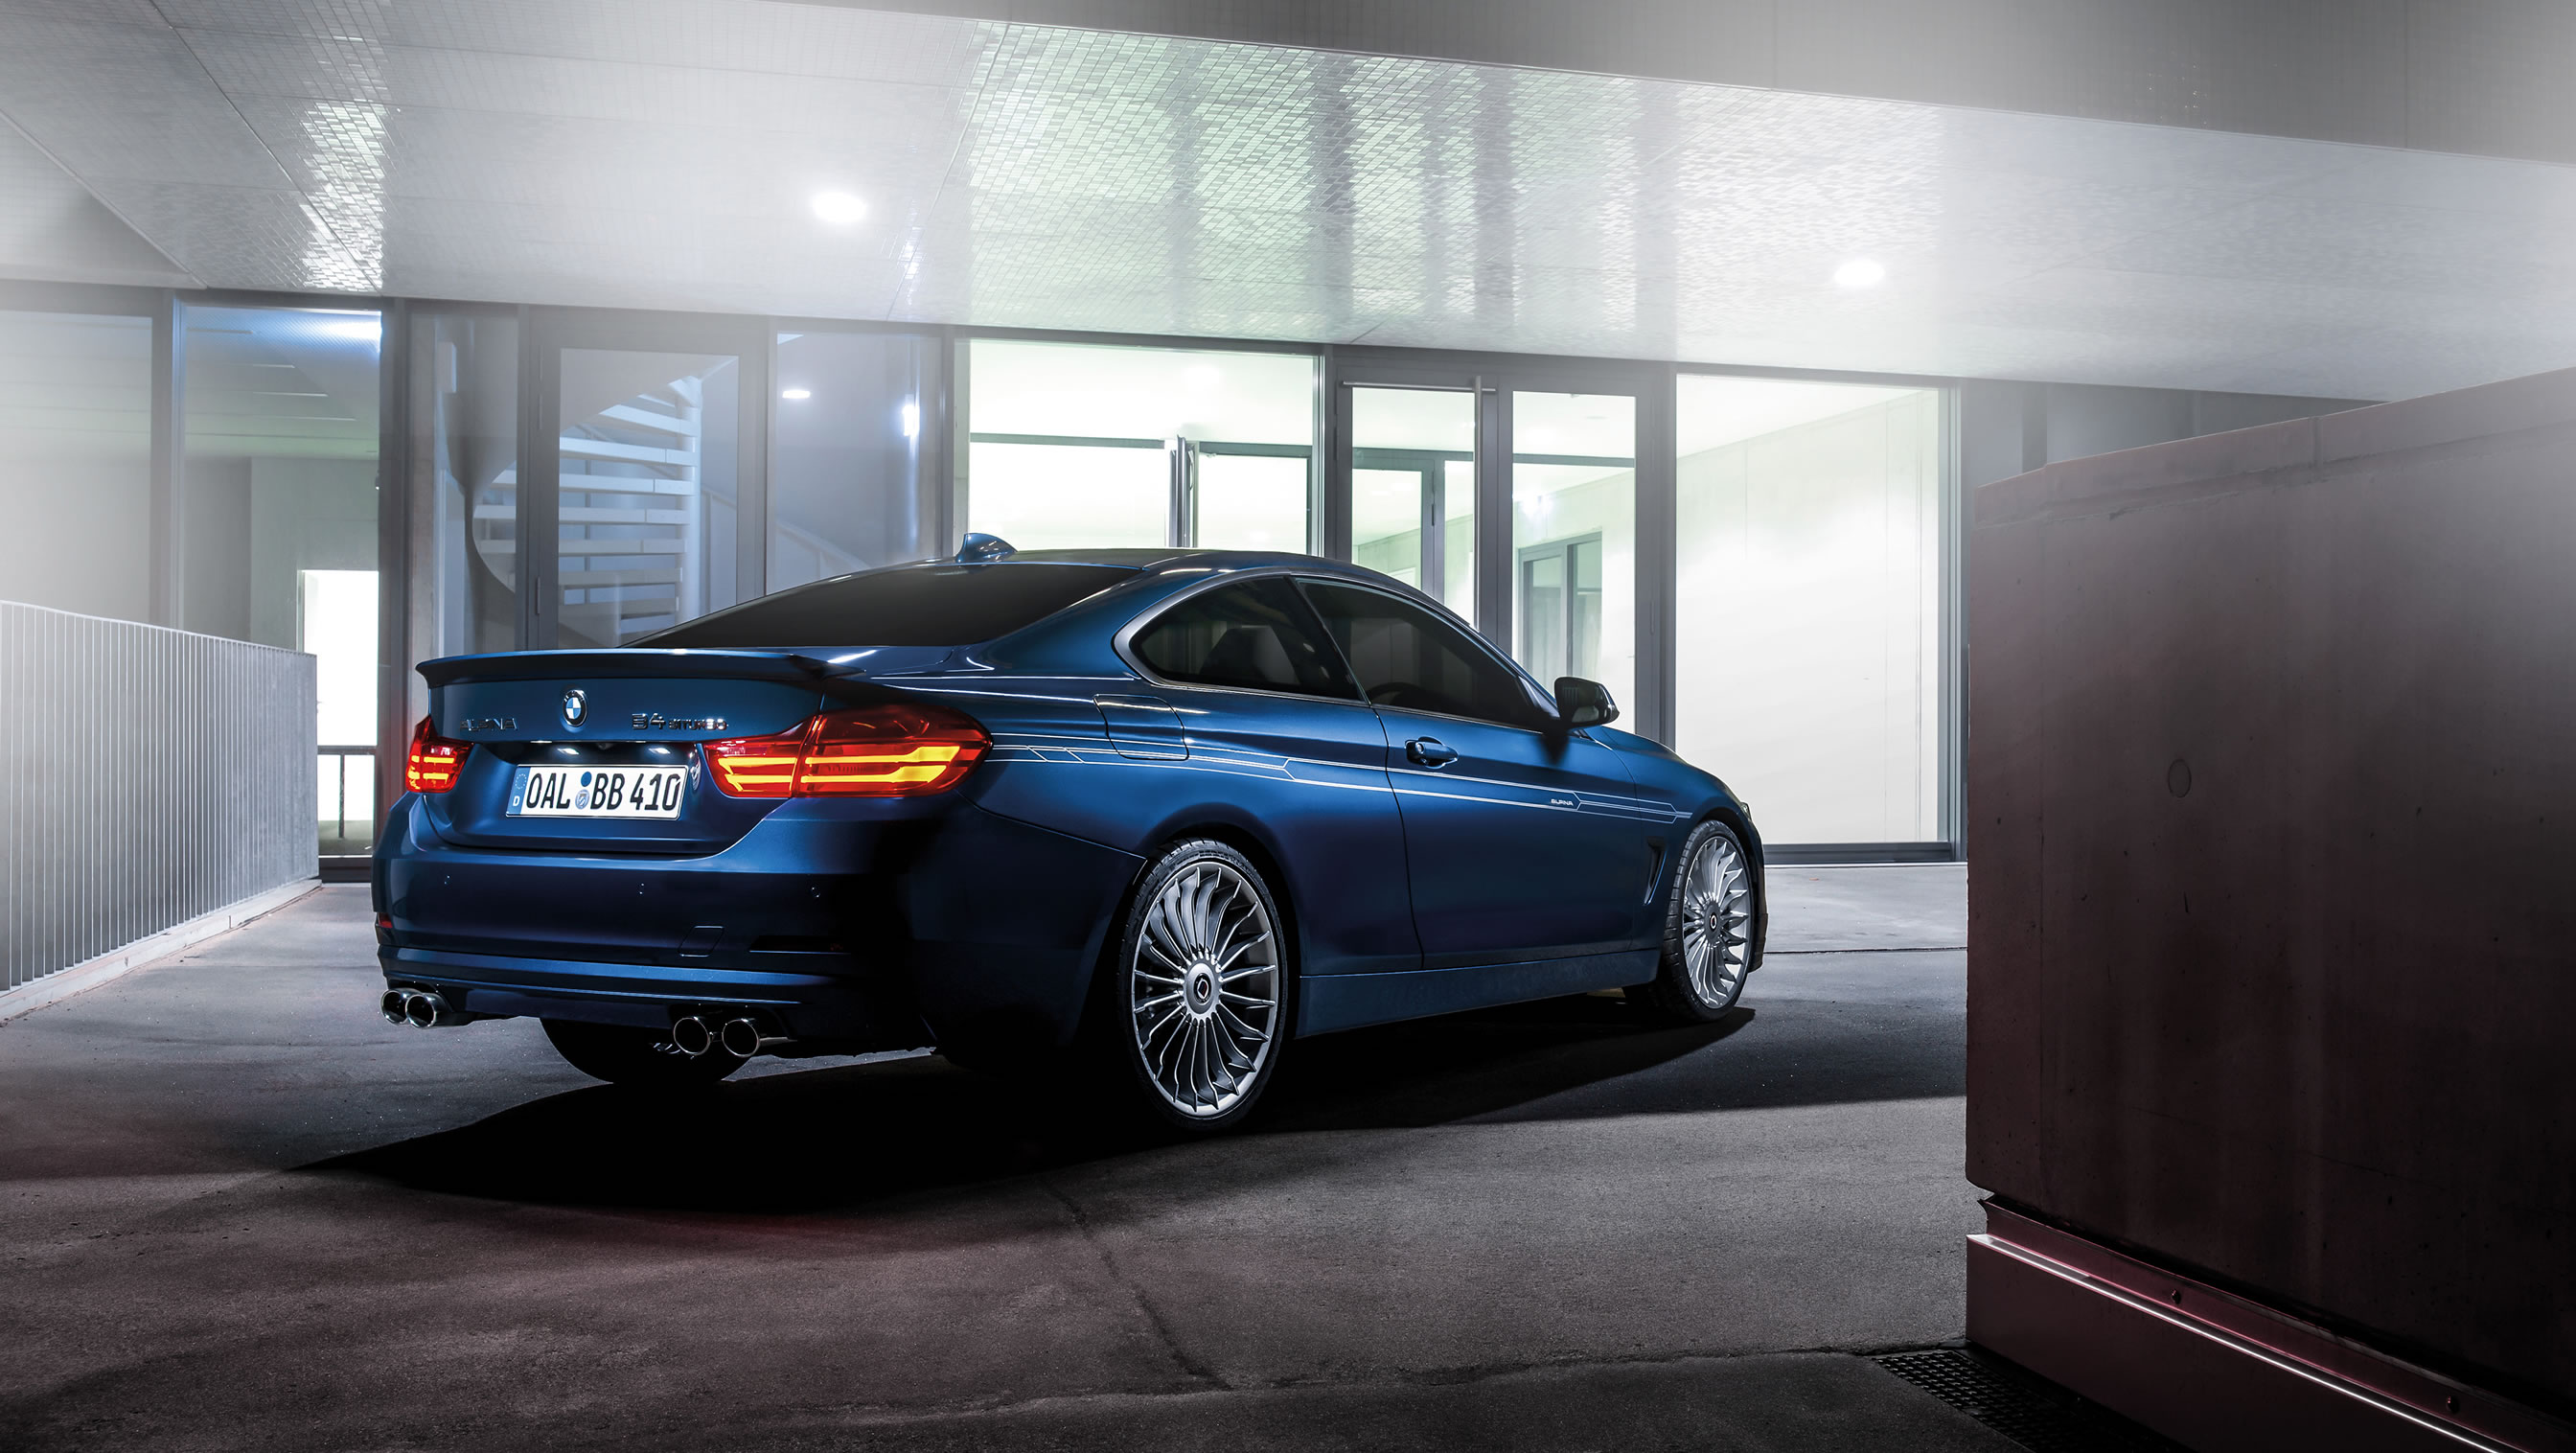 The Design Of 2017 Bmw Alpina B4 Biturbo Coupé Combines Muscular And Delicate Elements In